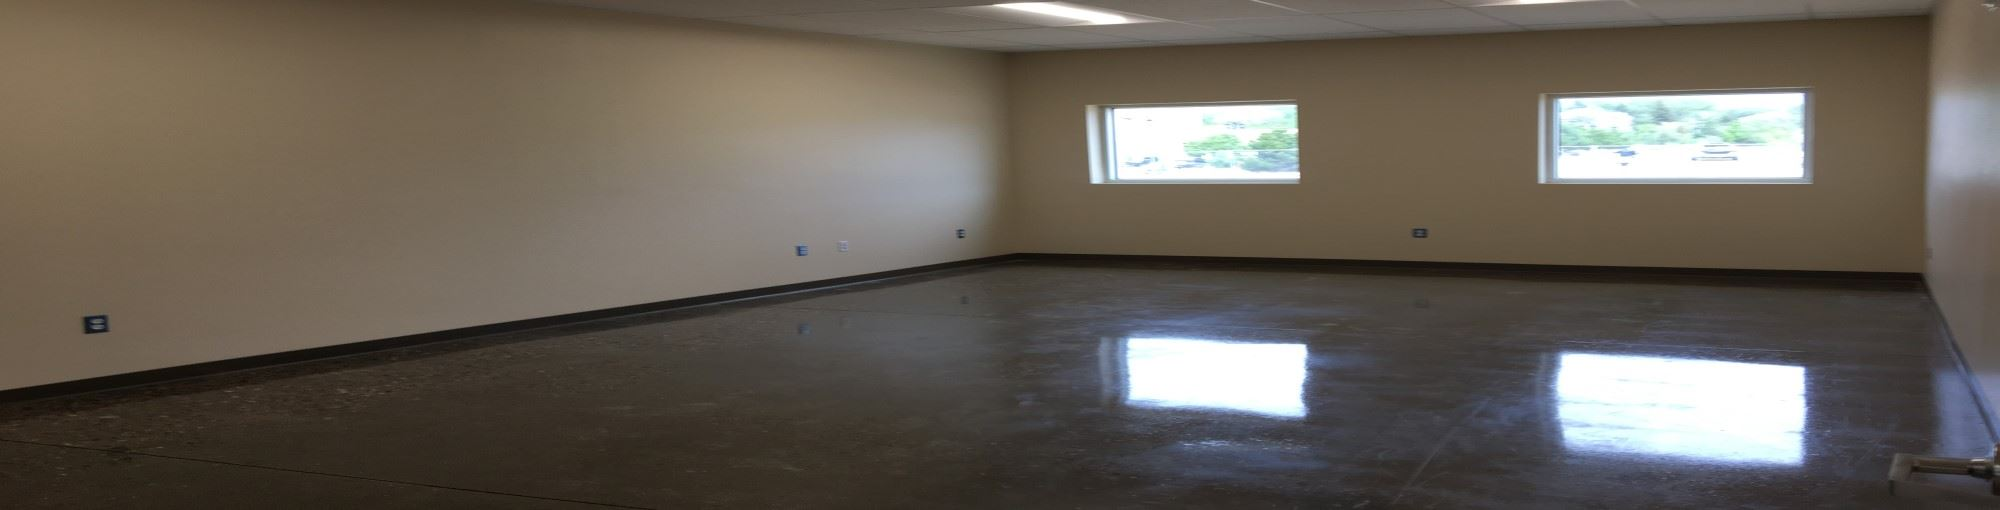 New Recreation Room